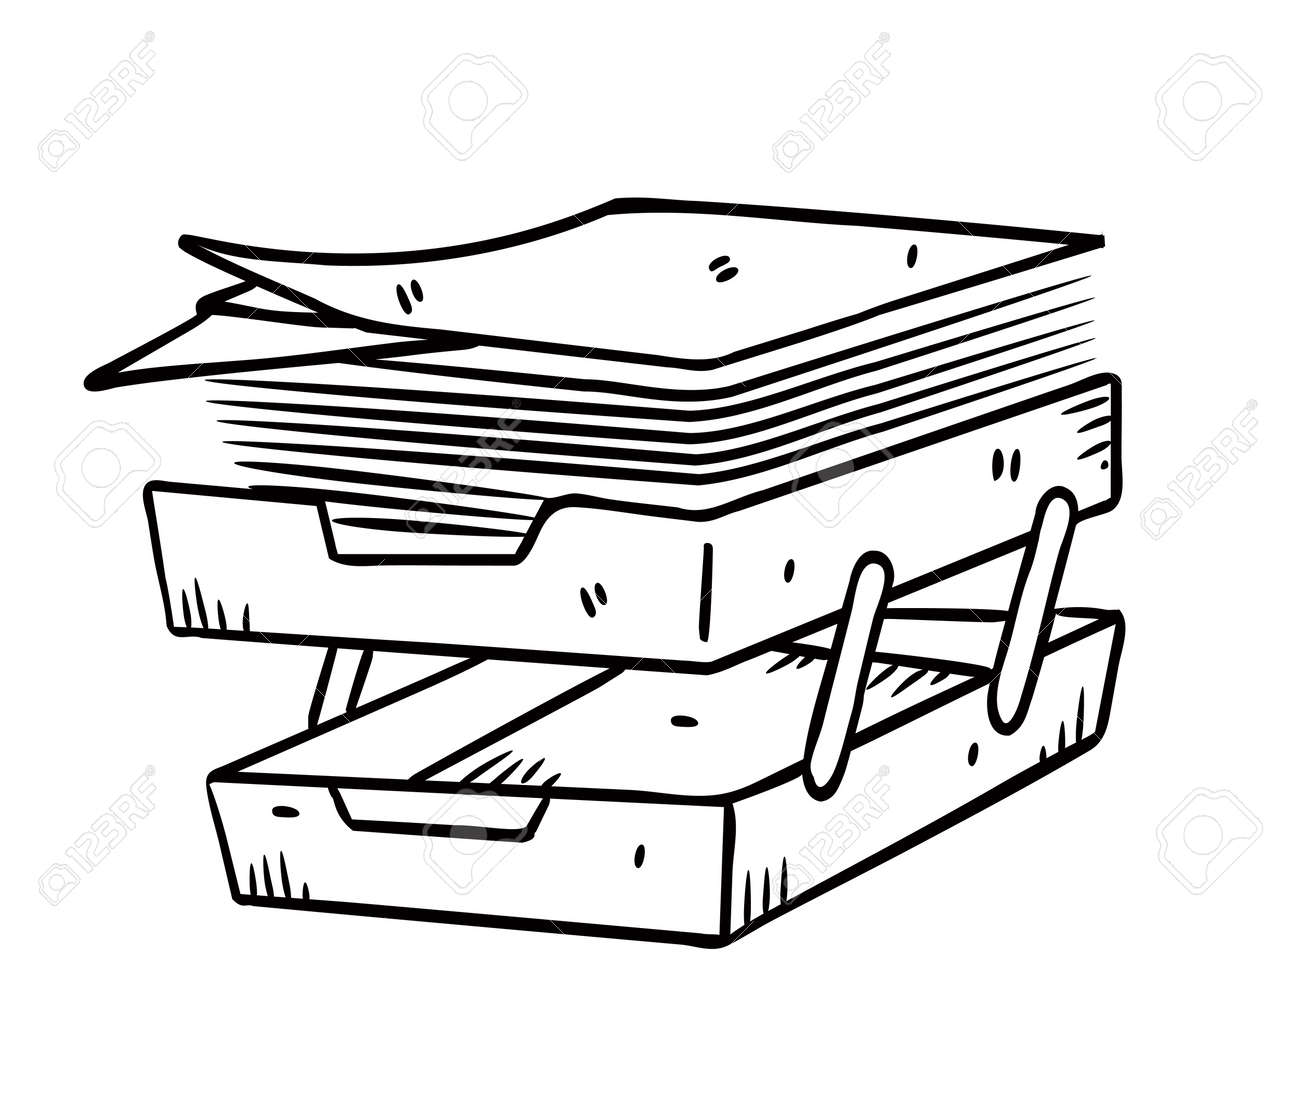 paper tray in doodle style - 13586895